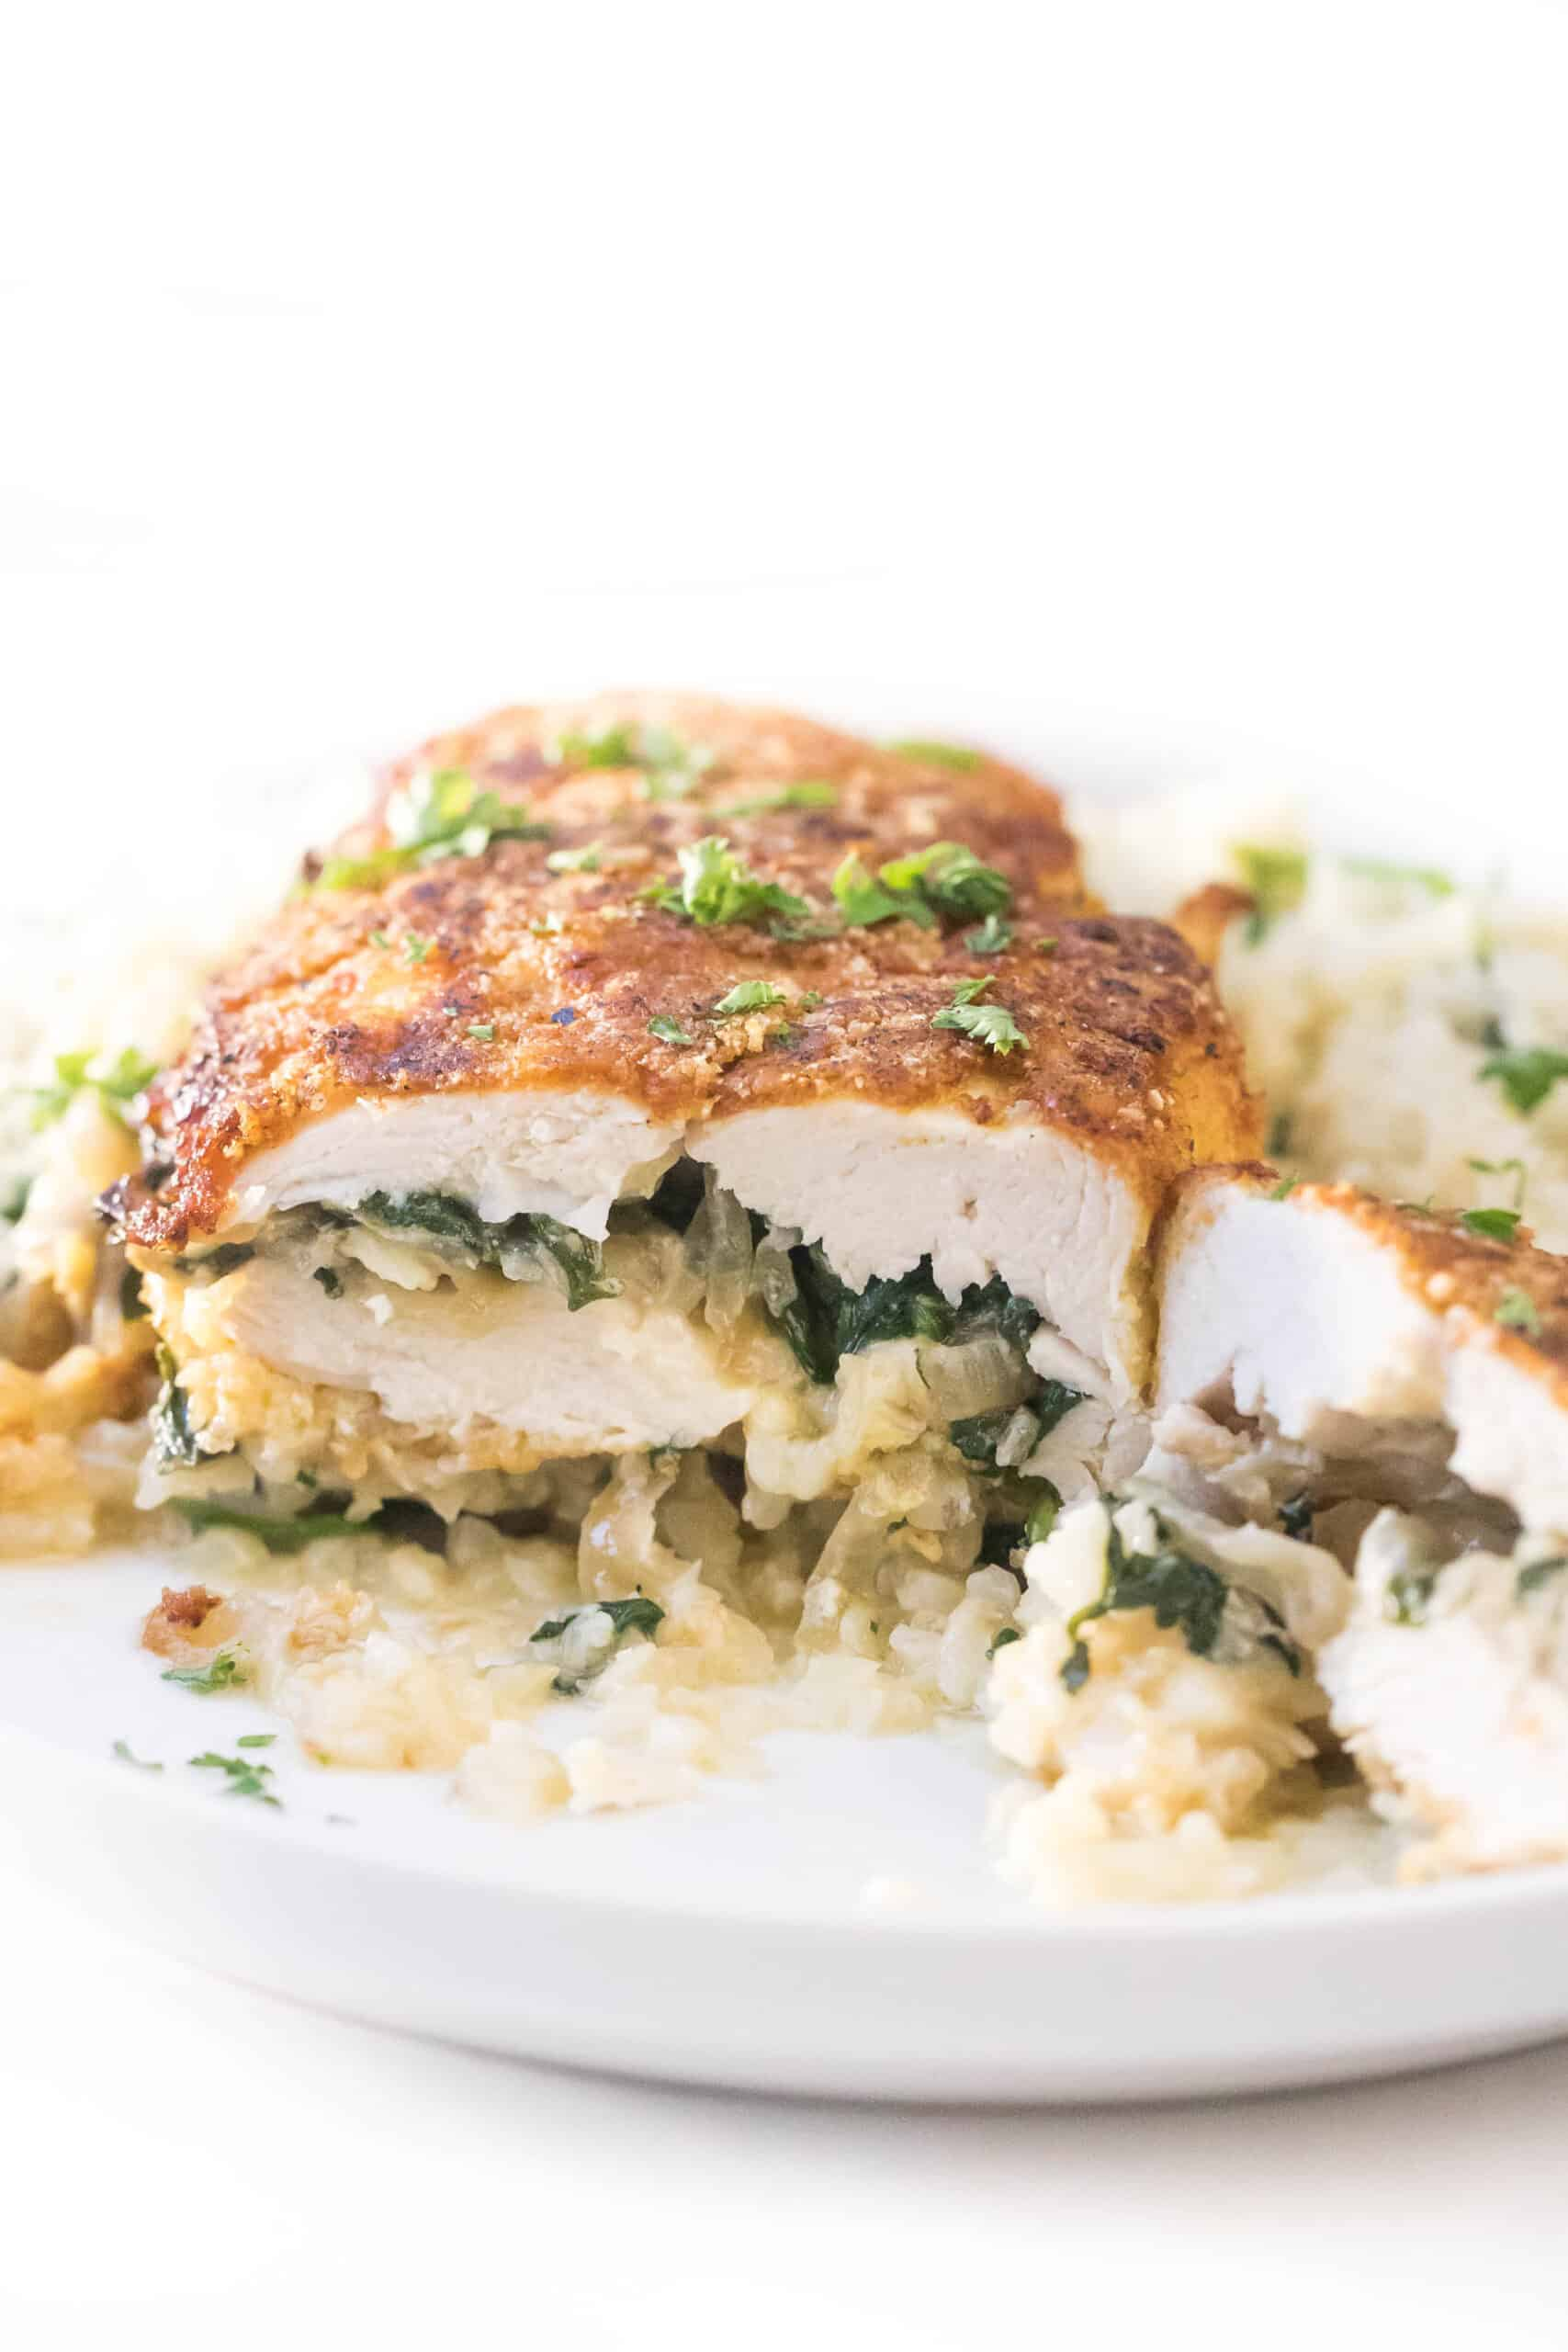 keto brie + spinach stuffed chicken breast cut in half on a white plate with cauliflower rice